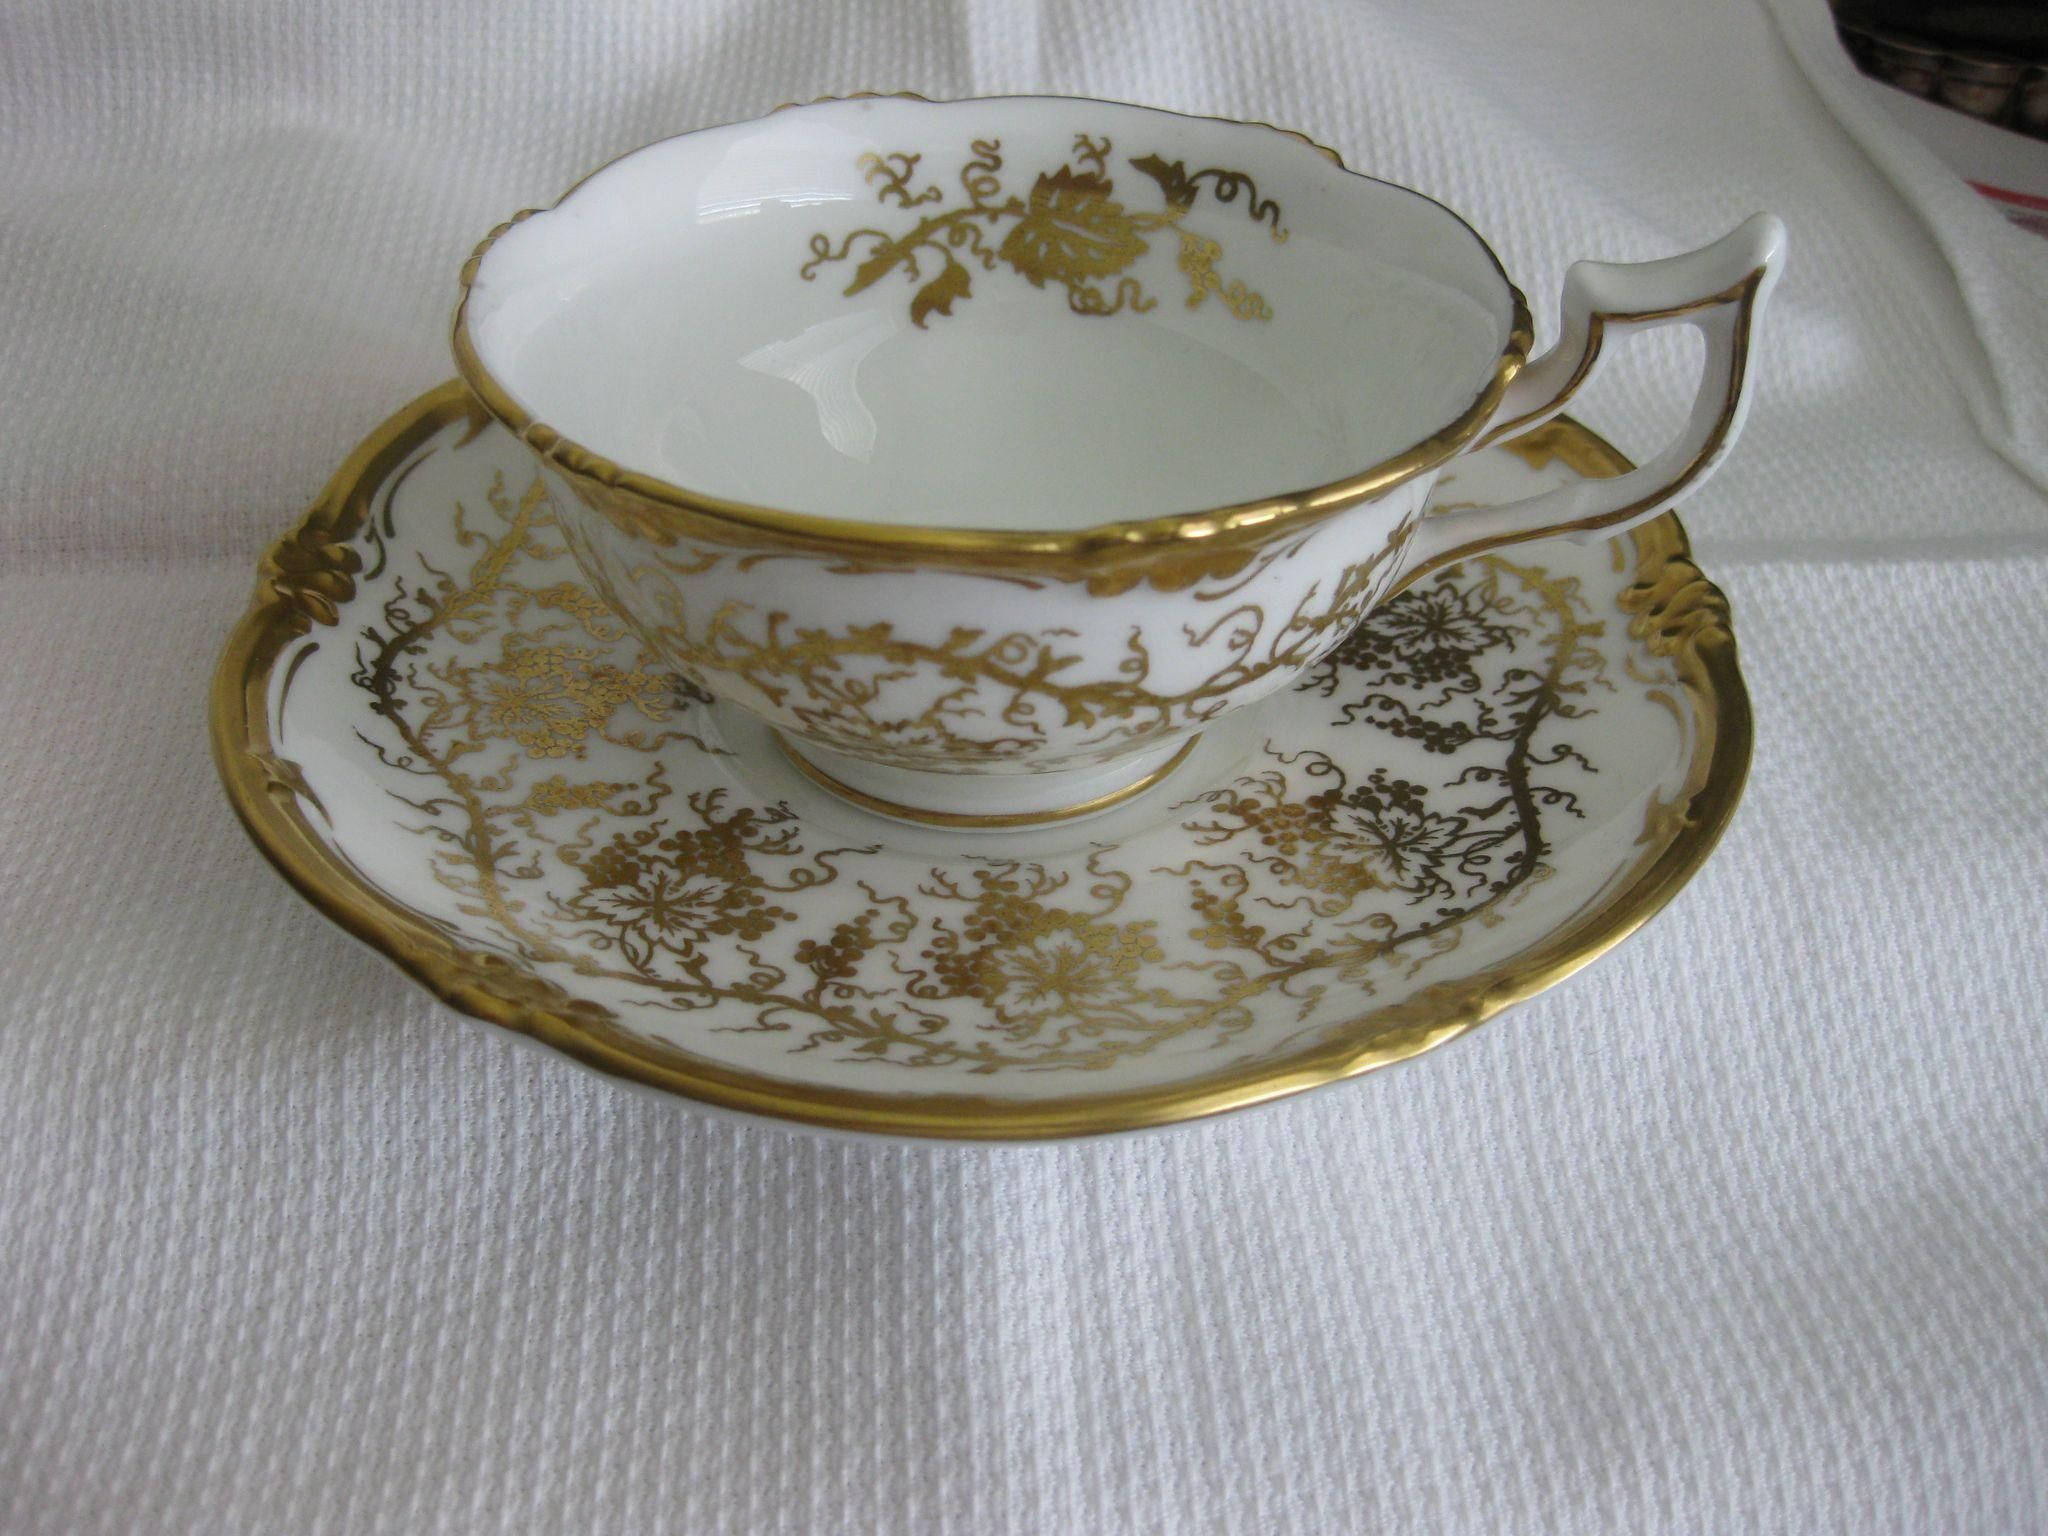 Gold Decorated Plate Pair of Royal Cauldon Bone China King/'s Plate made in England Plate